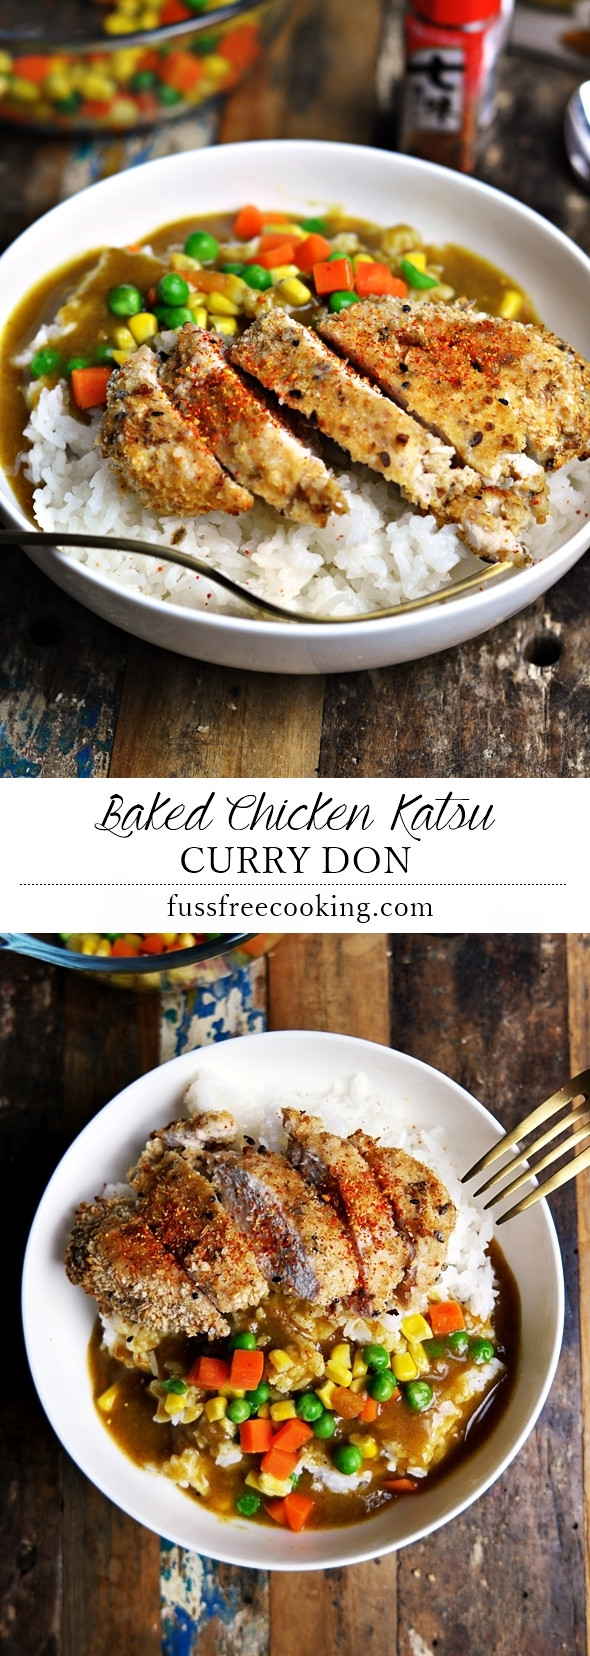 Baked Chicken Katsu  Baked Chicken Katsu Curry Don incl A Video Instruction